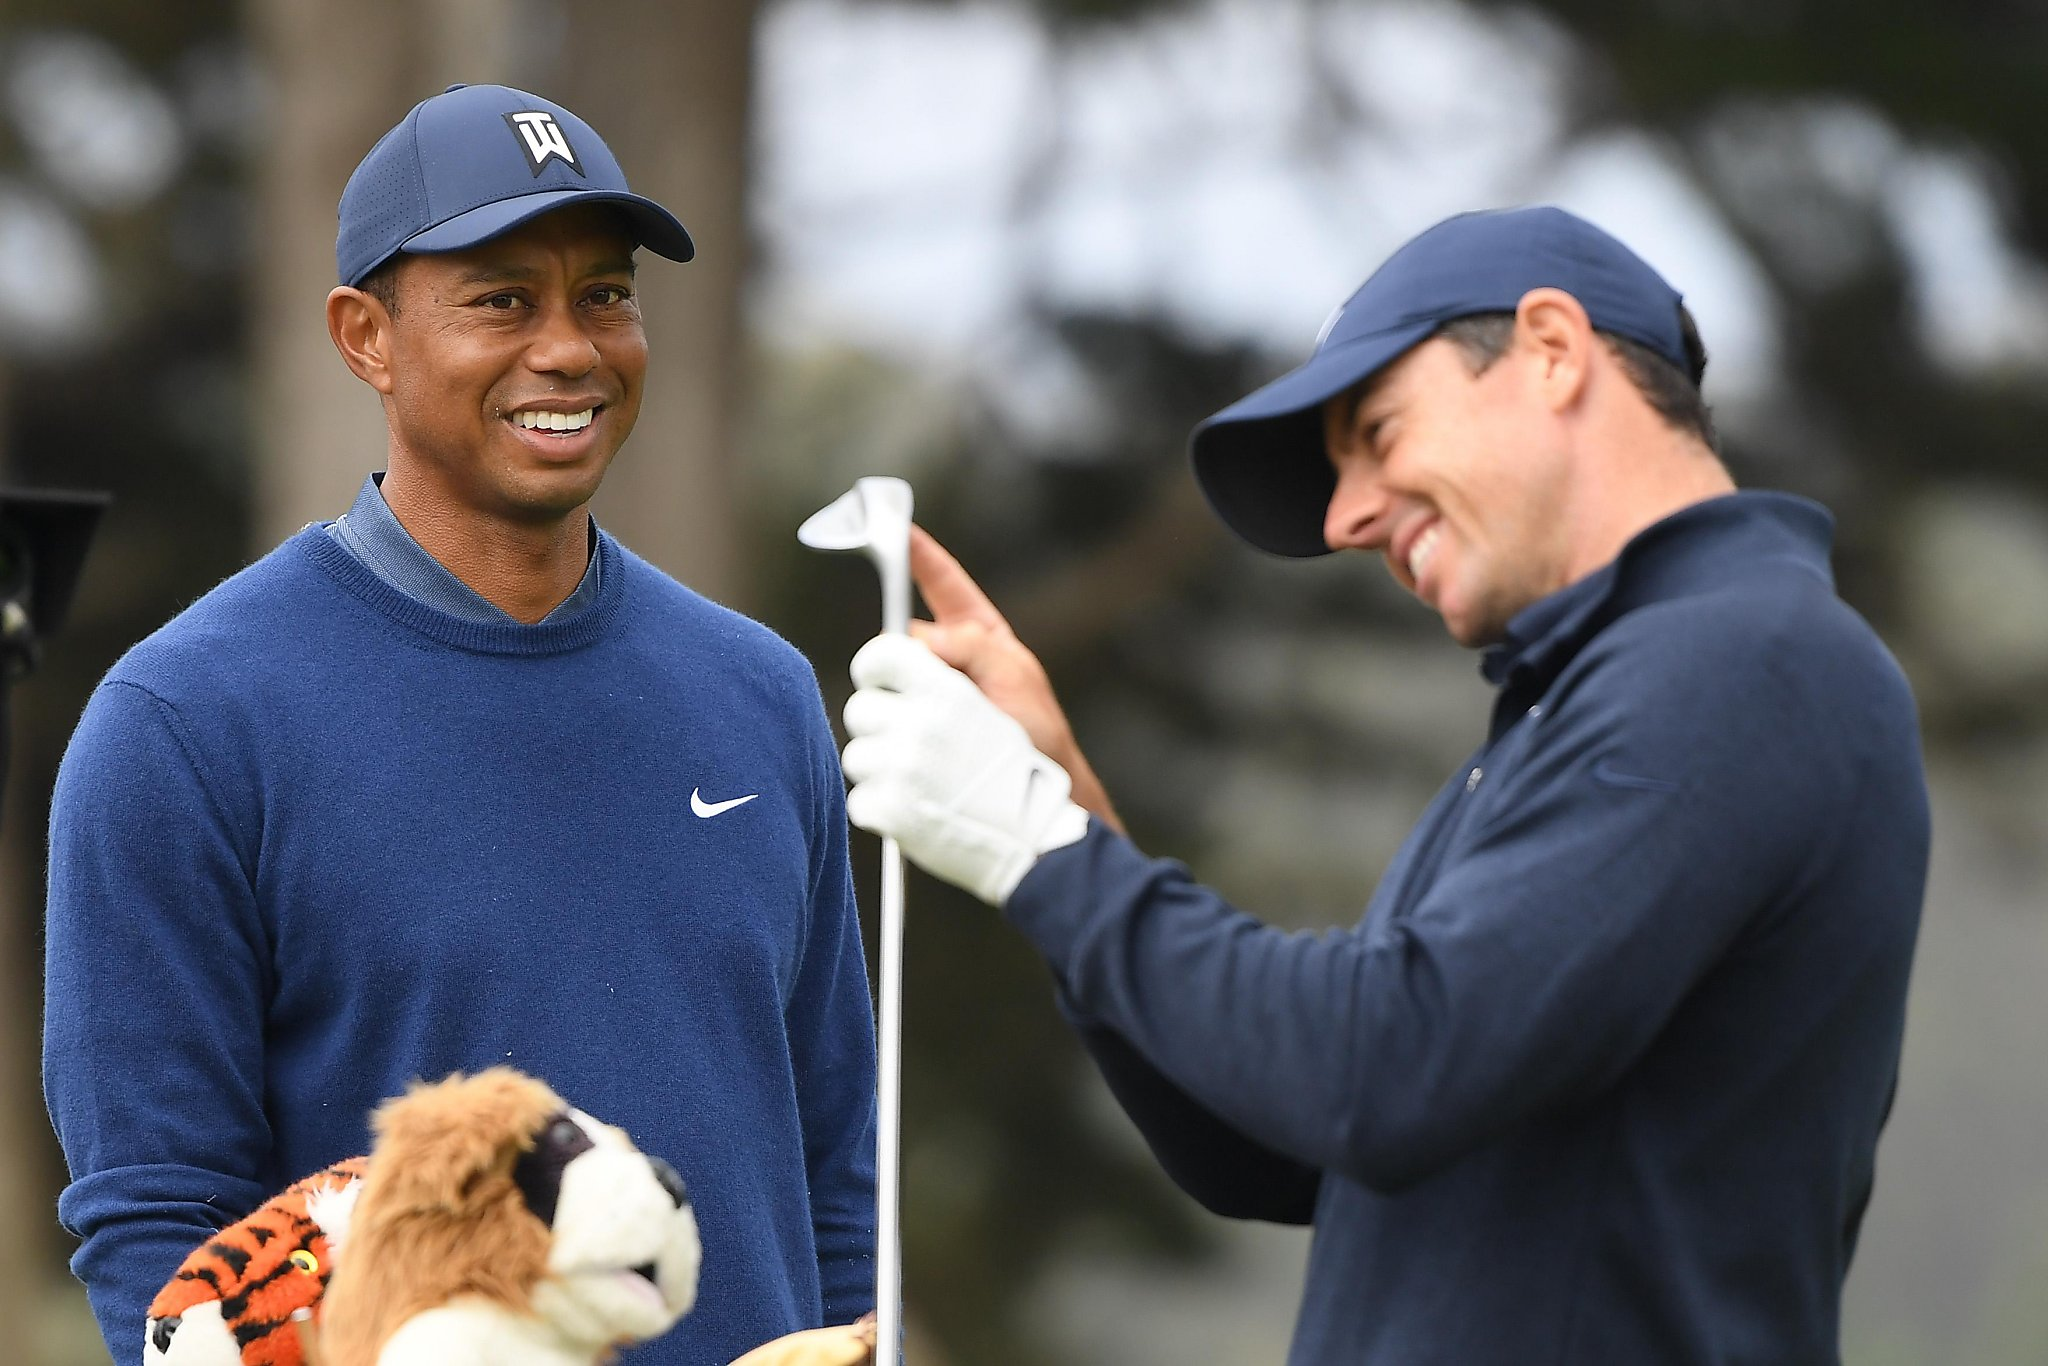 Tiger Woods talking baseball: 'That's how much we hate the Giants'